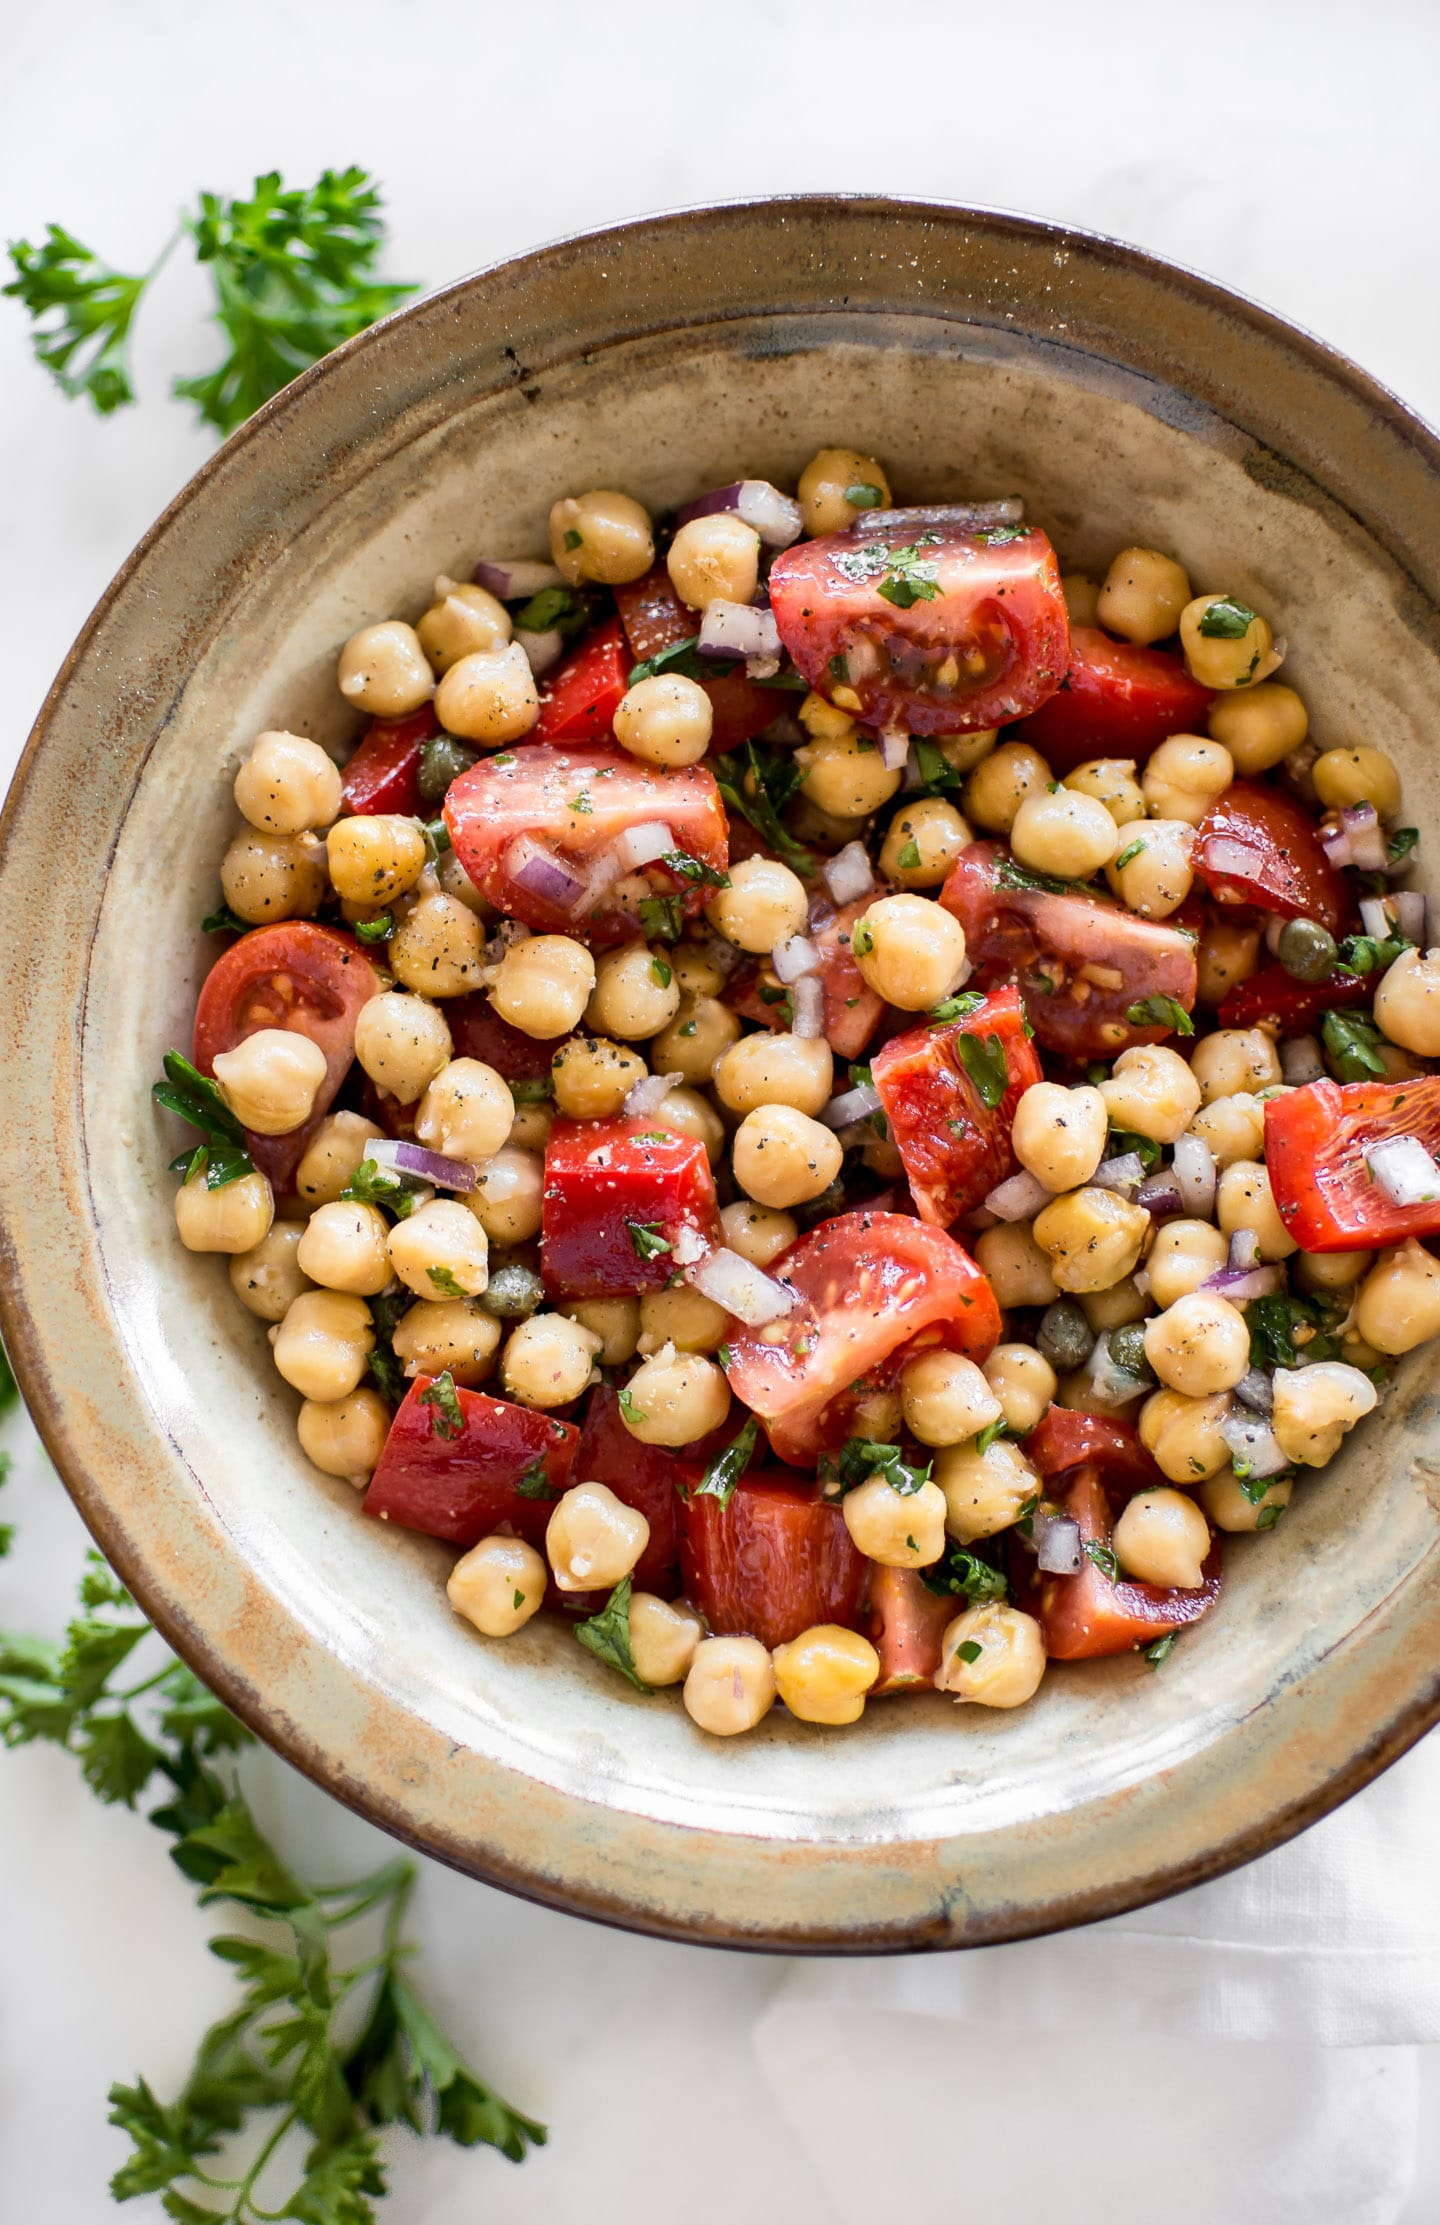 This easy vegan tomato chickpea salad recipe is healthy, delicious, and perfect for summer. You'll love the simple lemon vinaigrette. This cold chickpea salad is great for meal prep.